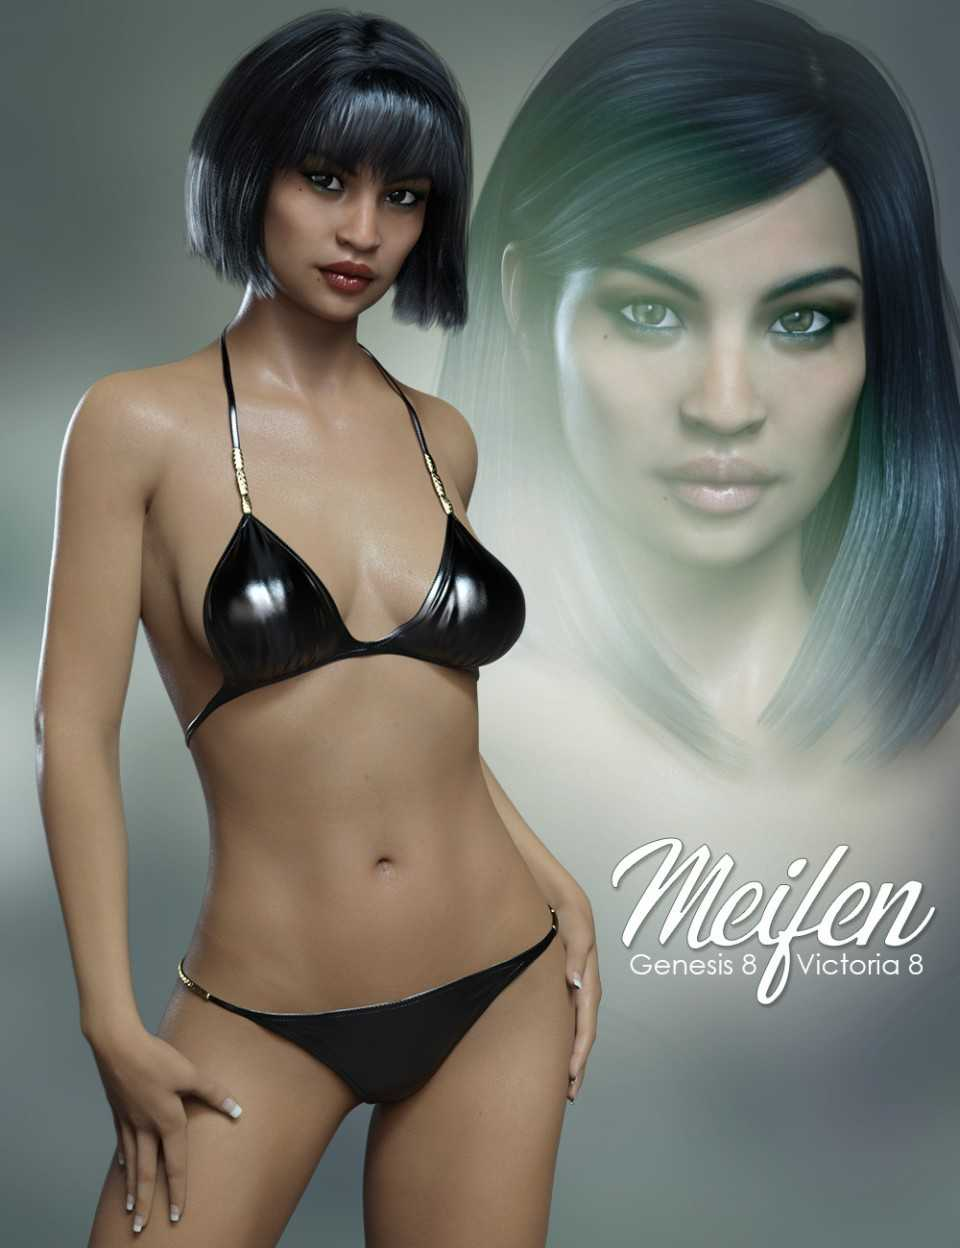 FWSA Meifen HD for Victoria 8